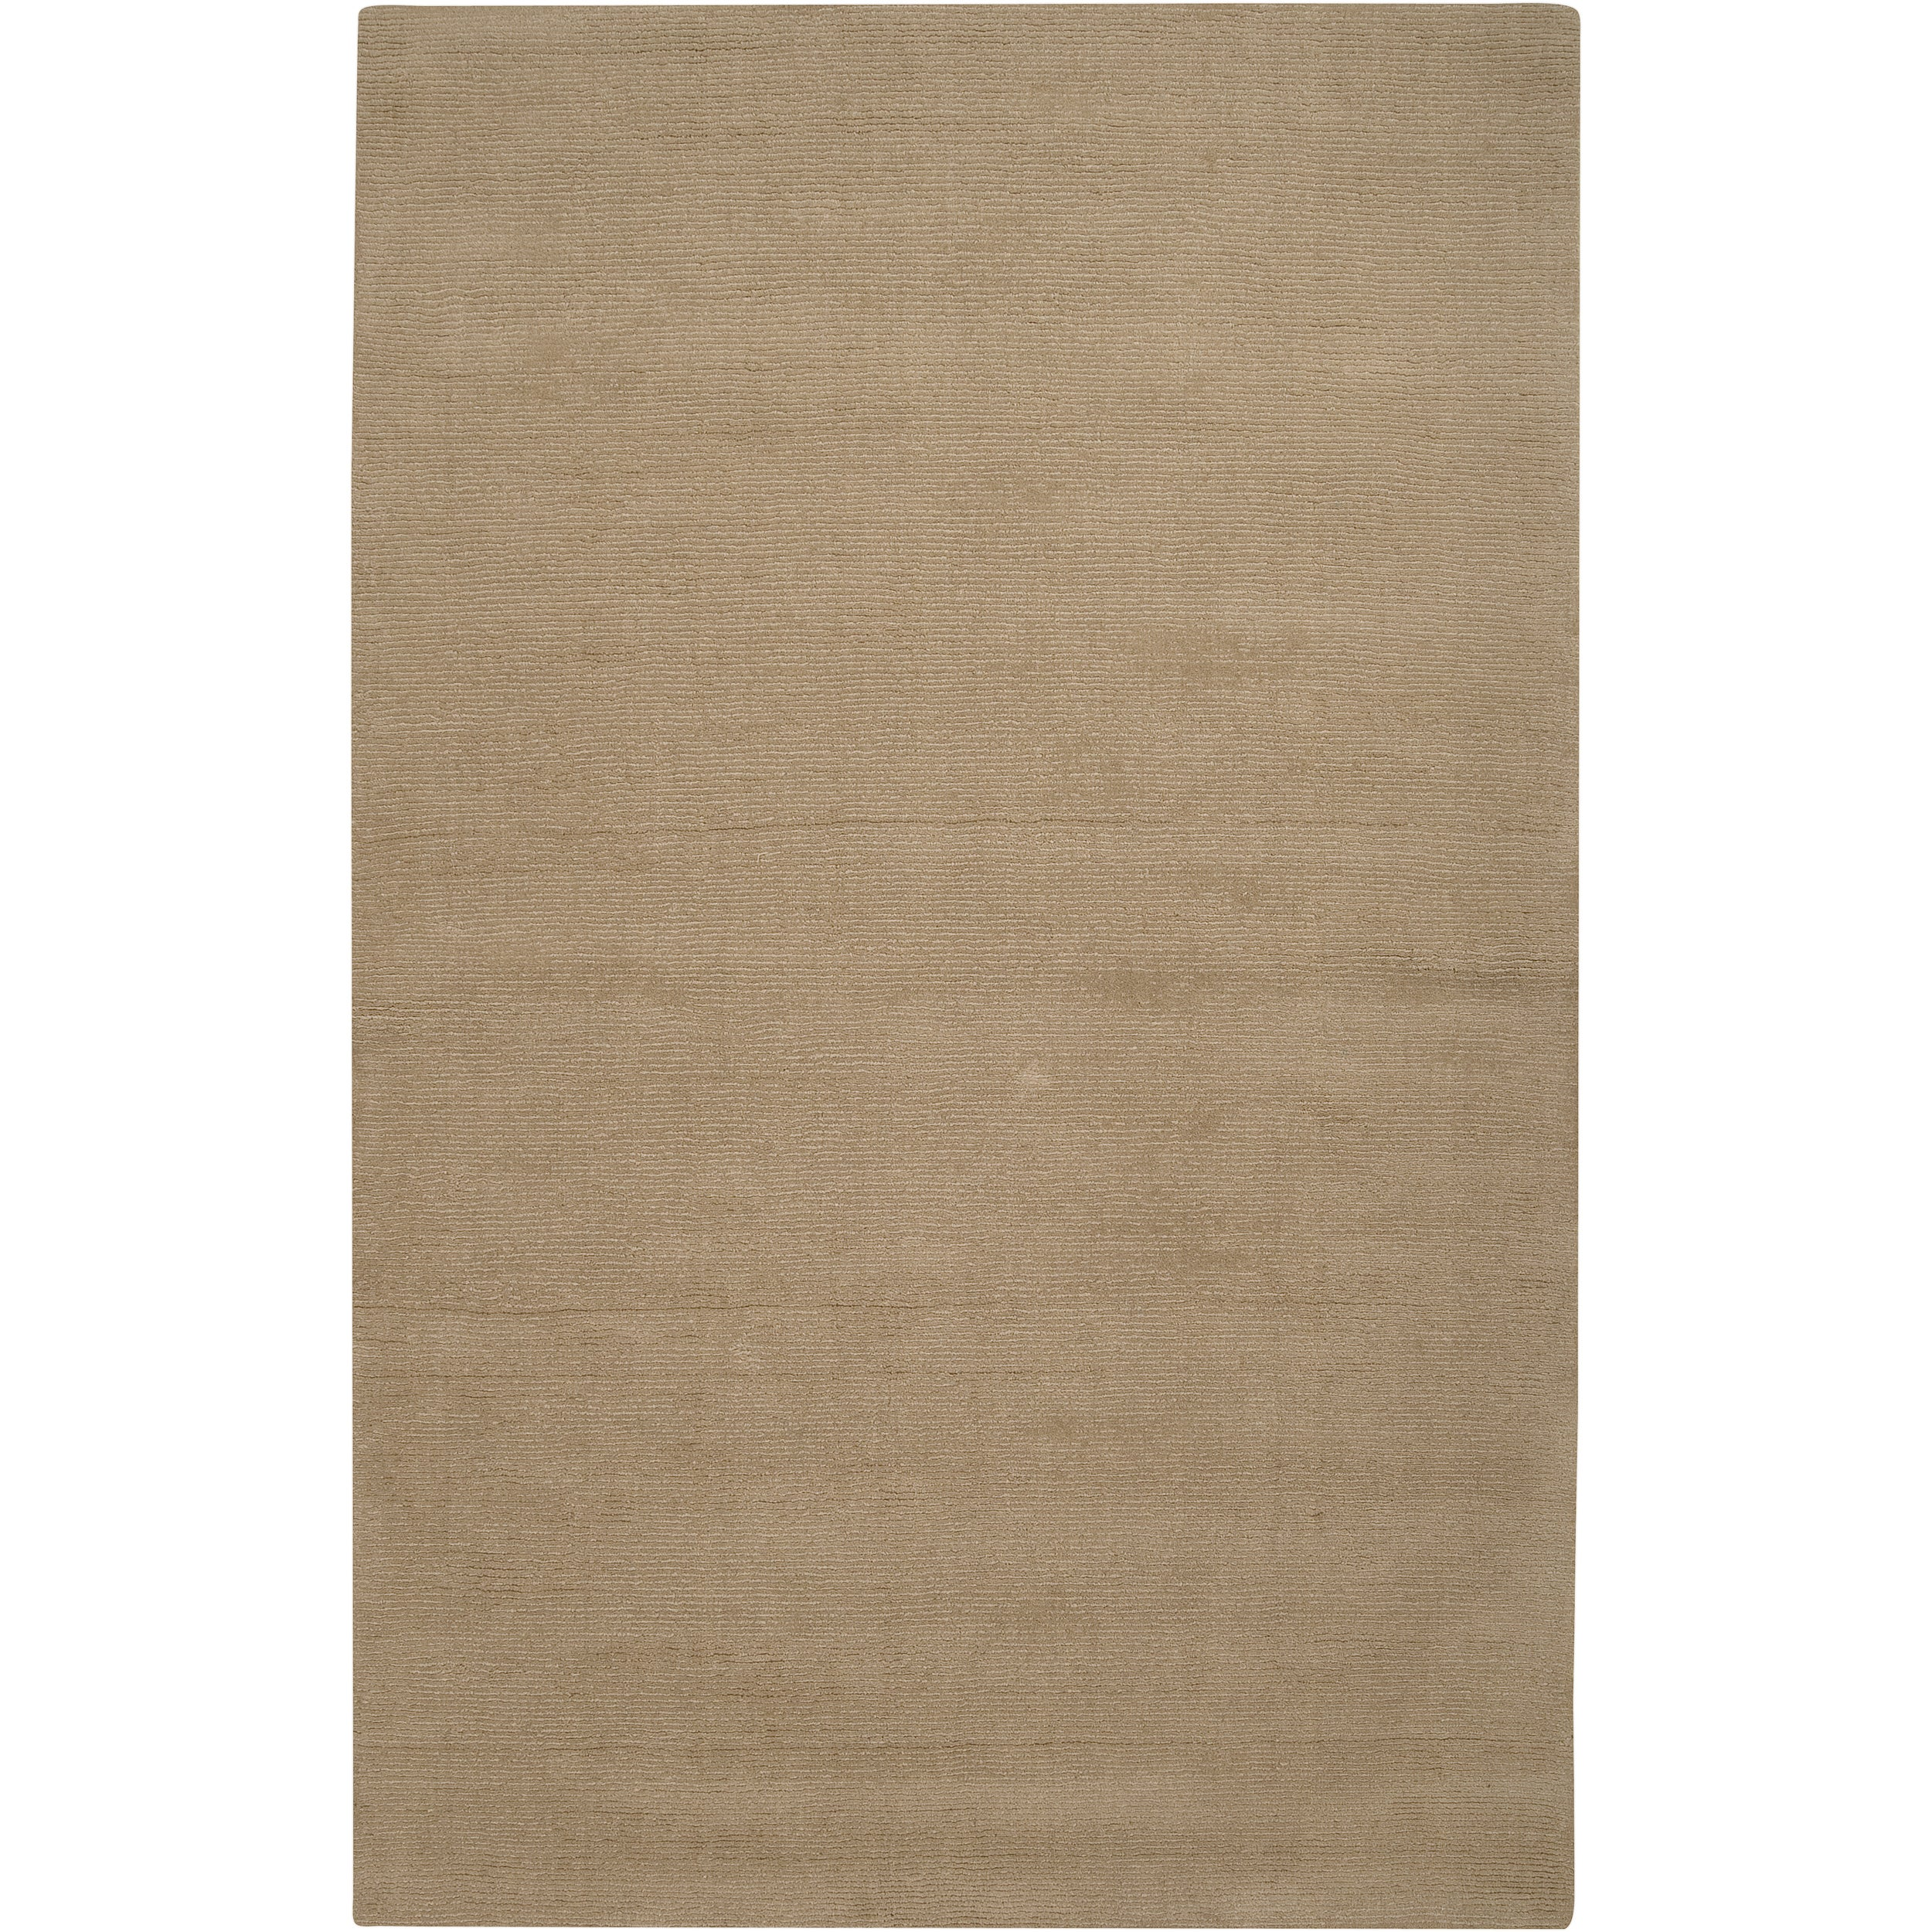 Hand-crafted Beige Solid Casual Dipson Wool Rug (6' x 9')